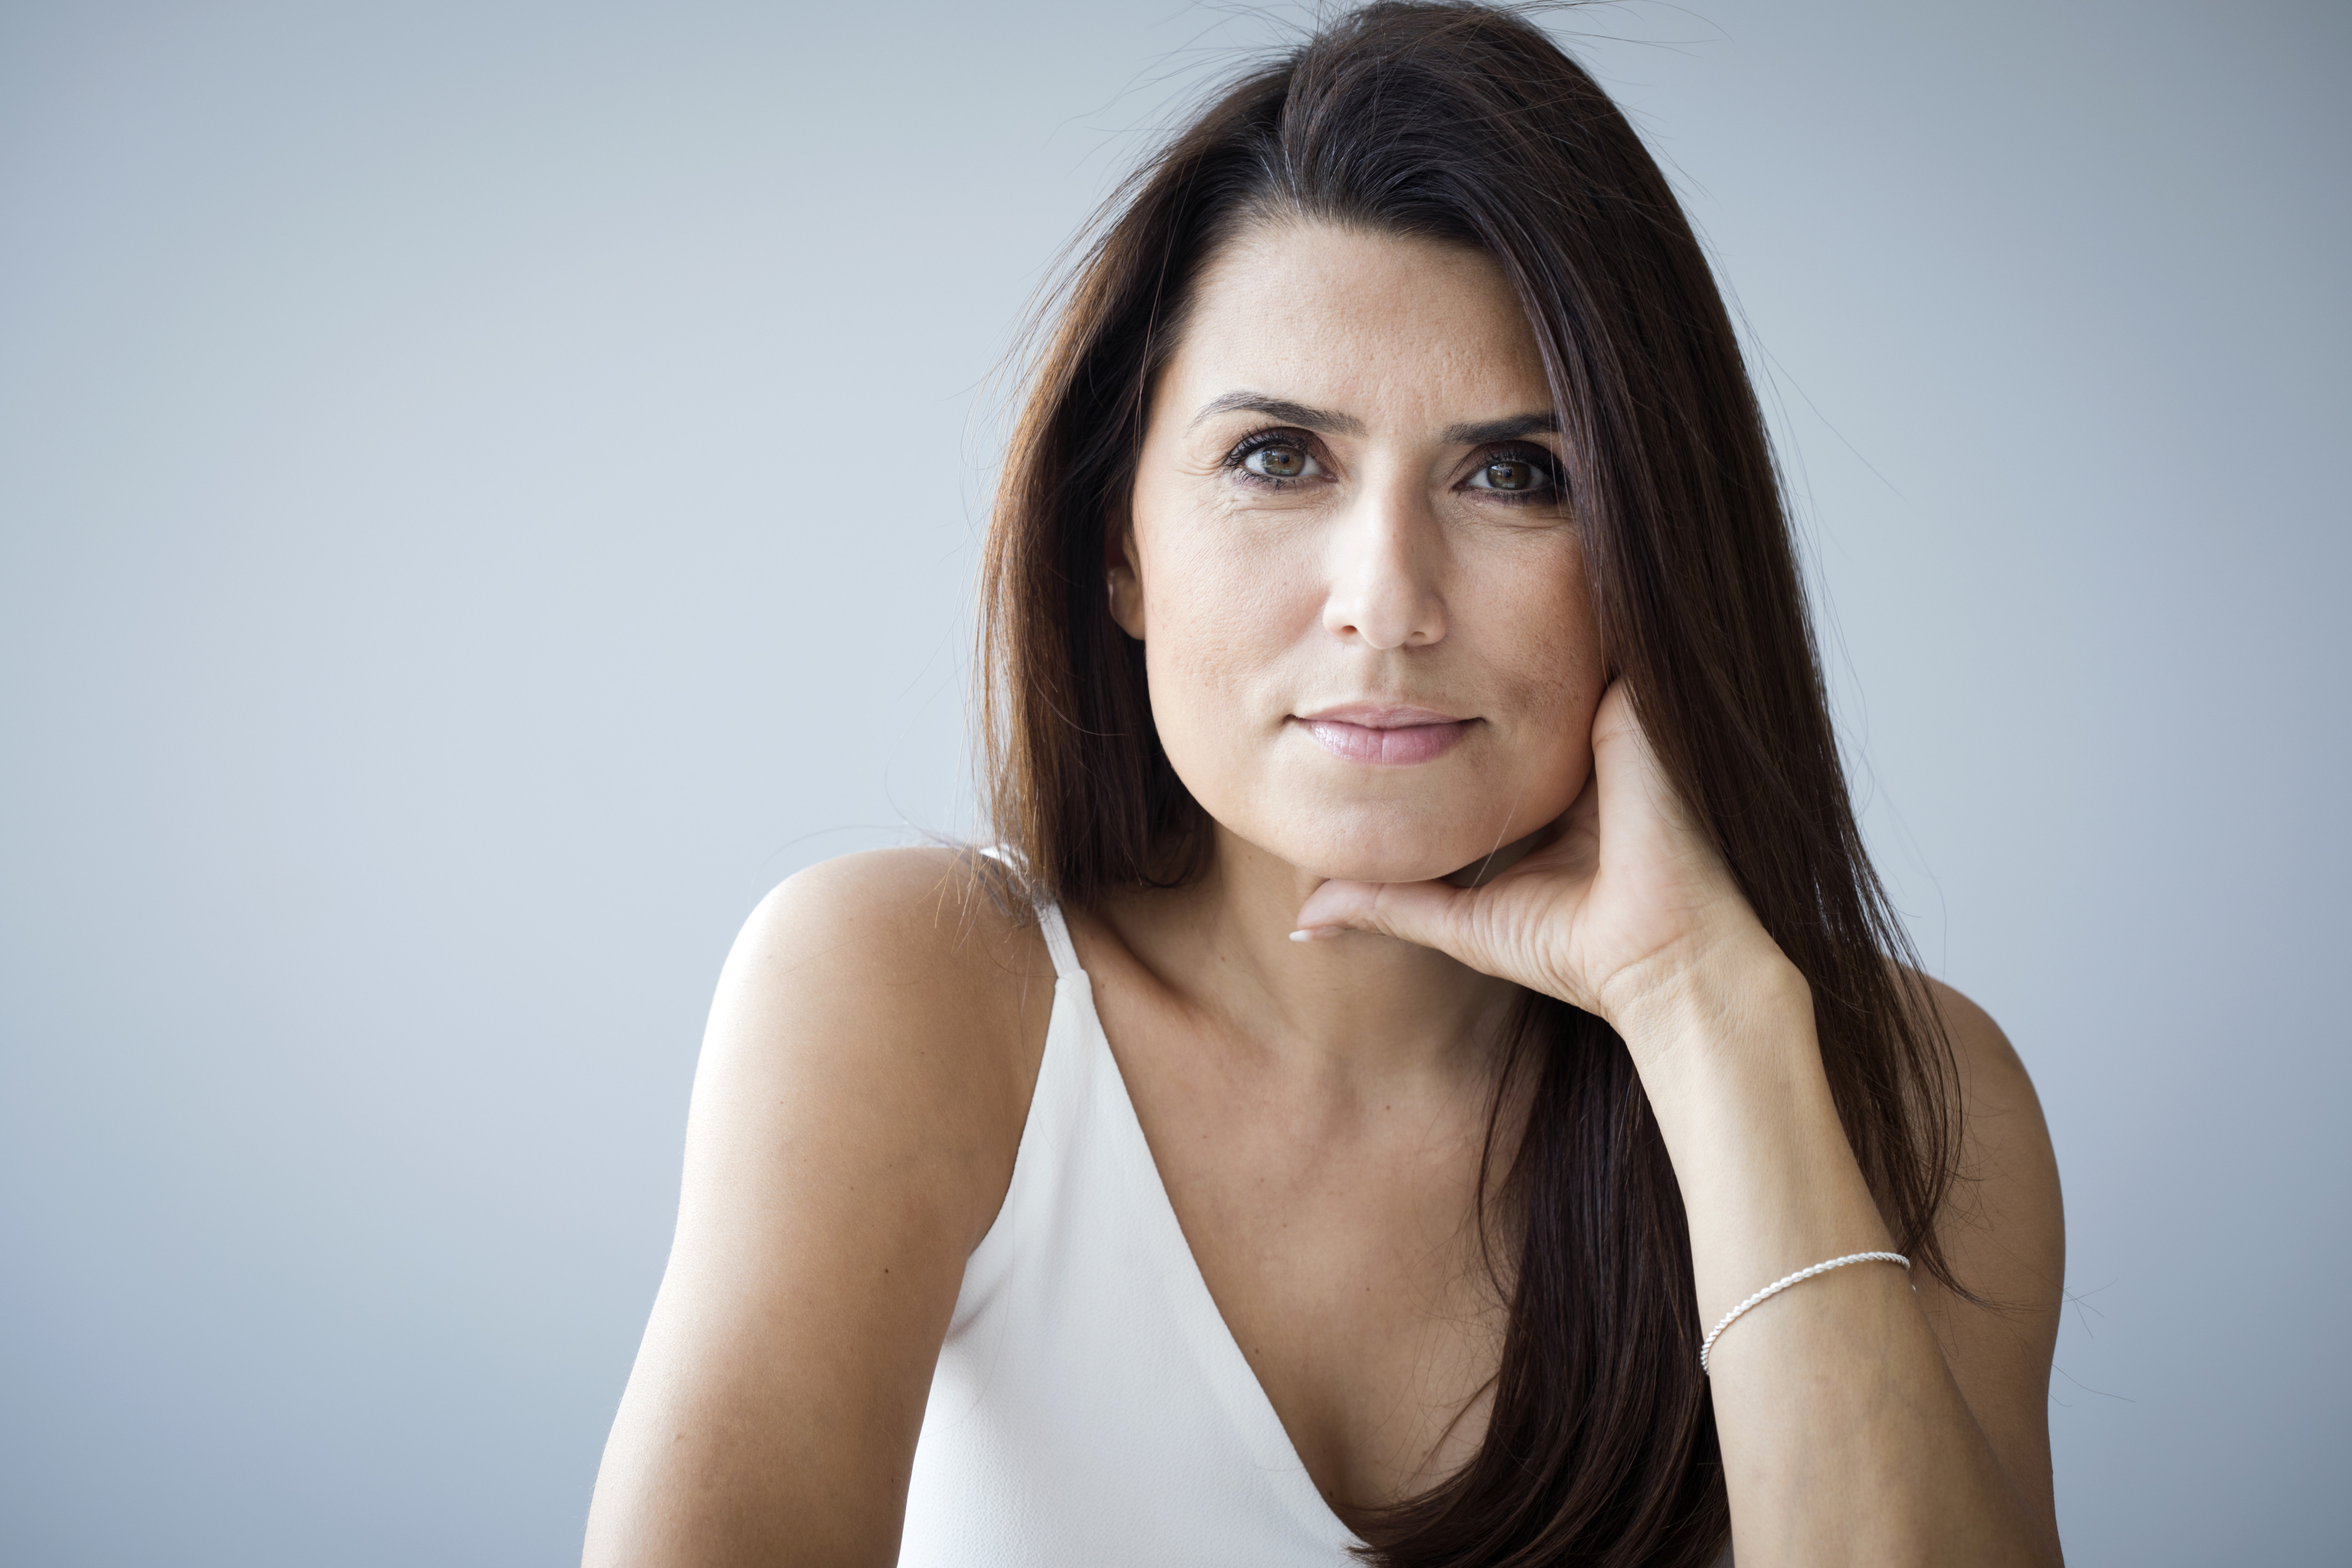 Going Through Early Menopause? Symptoms, Causes, And Tips To Cope